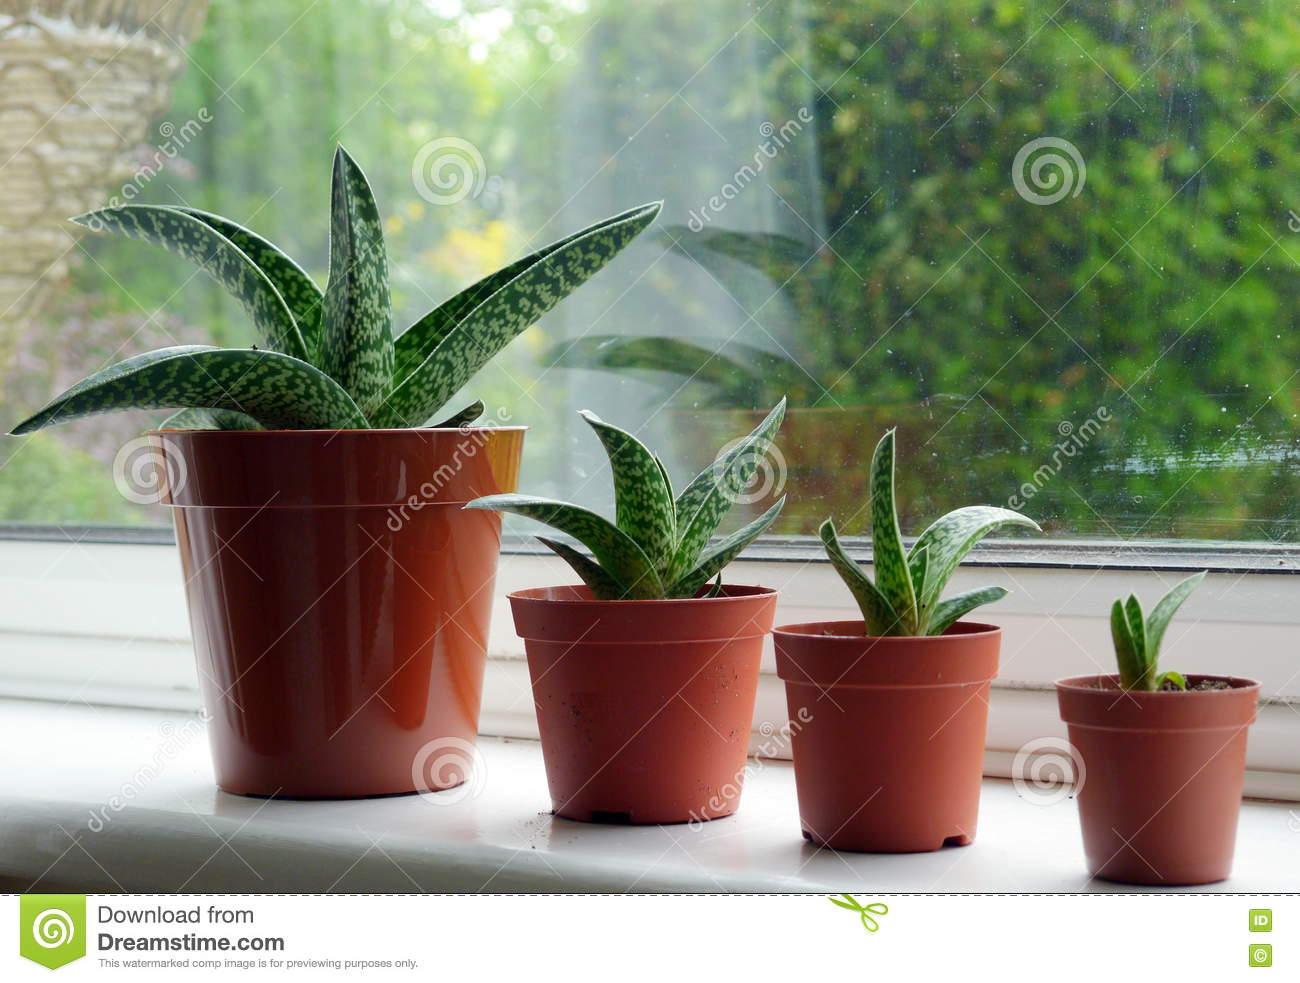 Image result for ALOE VERA garden windowsill